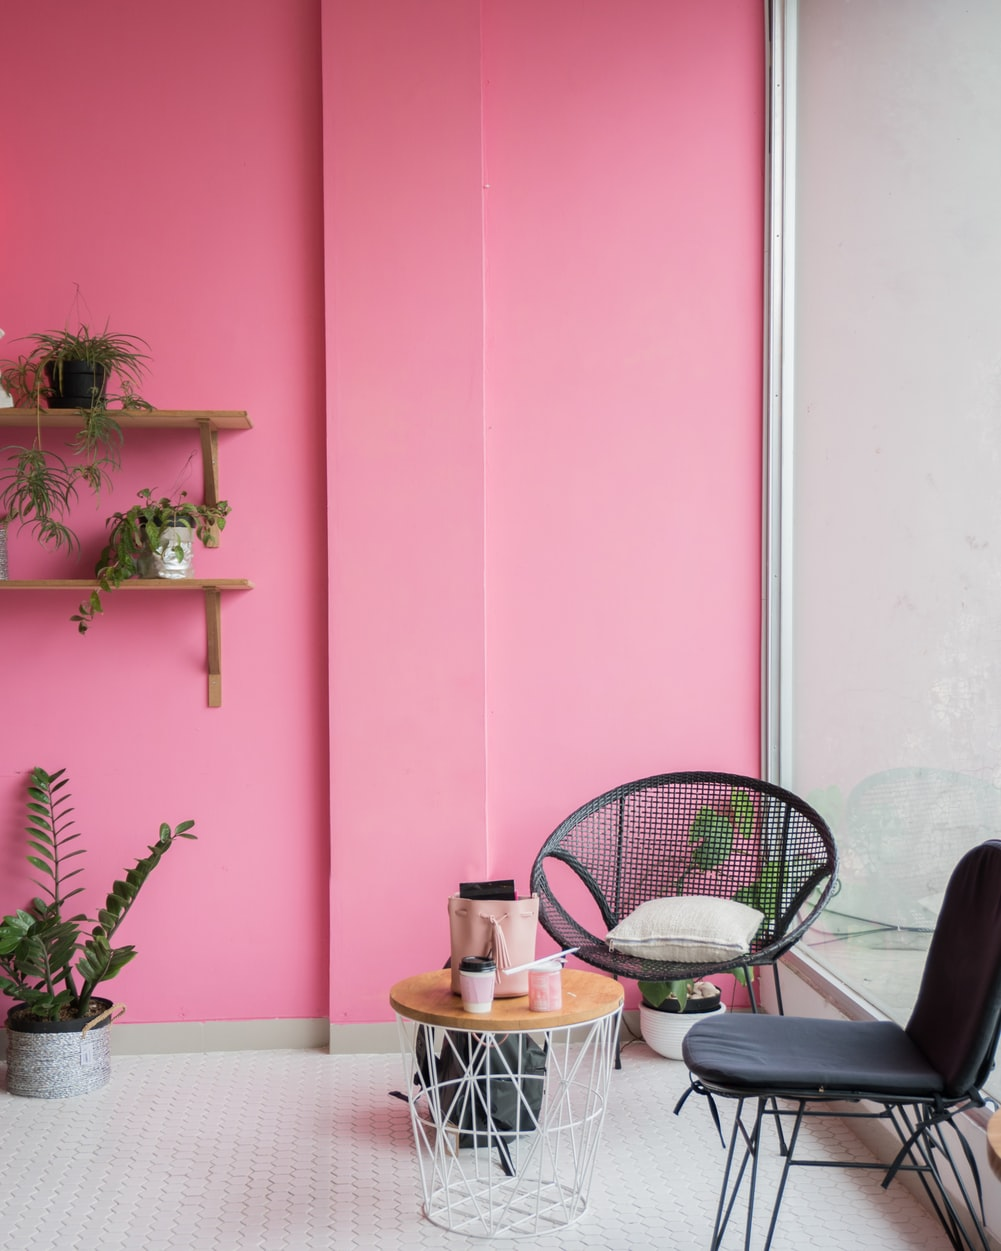 The psychology of interior design and its influence on your subconscious 3